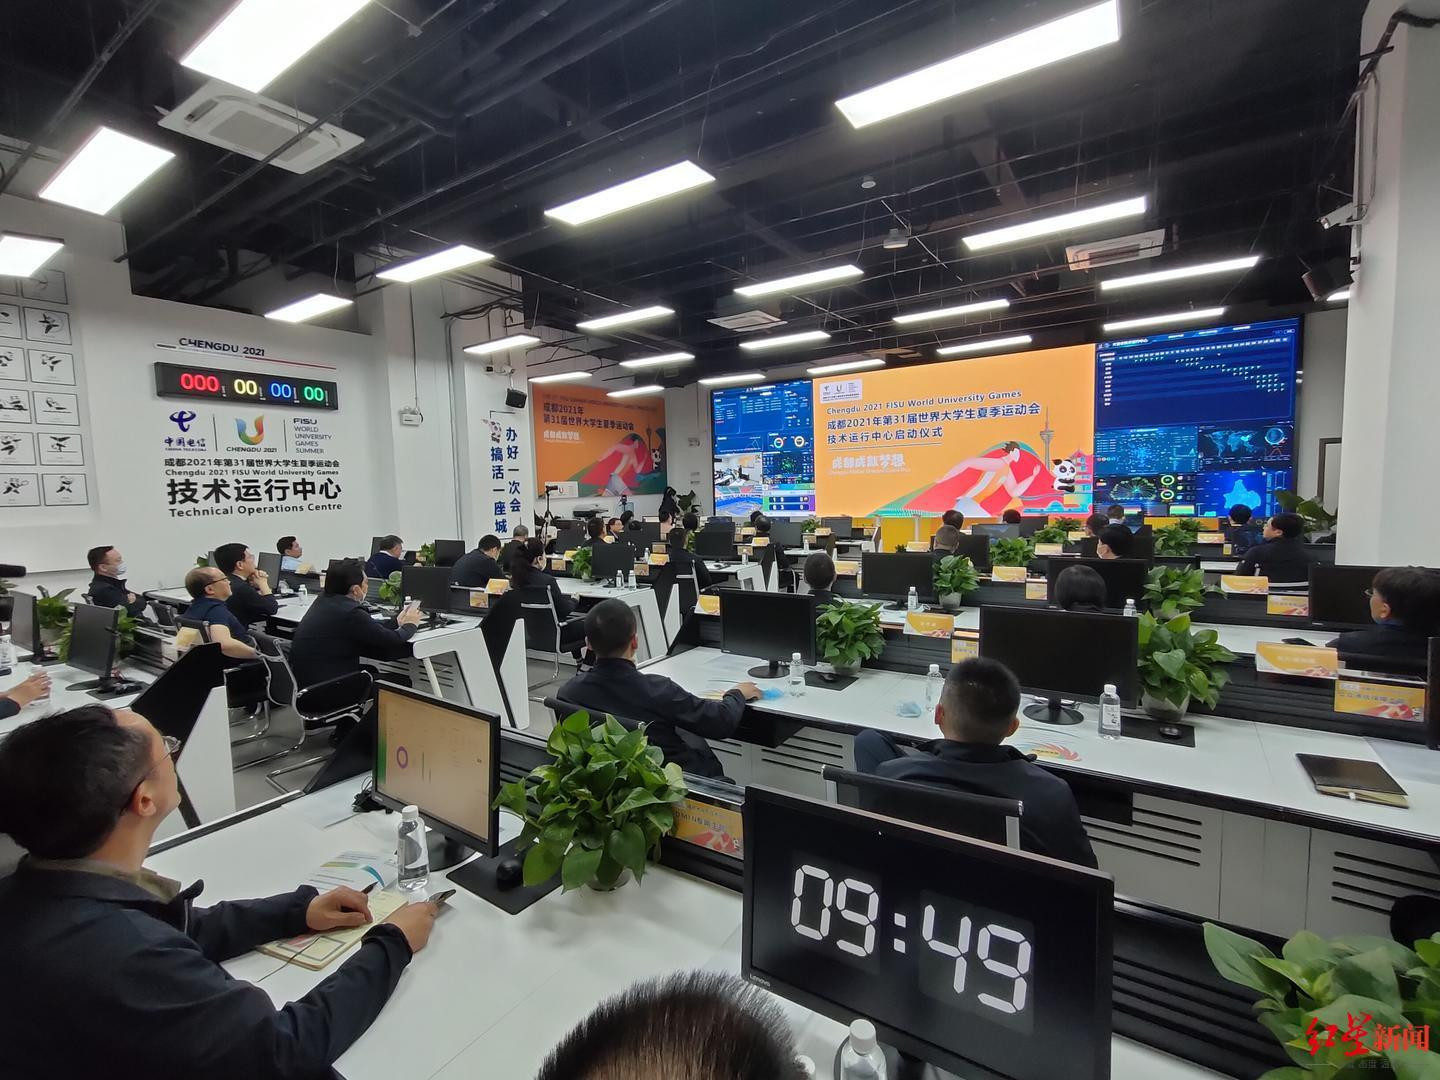 Chengdu 2021 technical operations centre officially opens